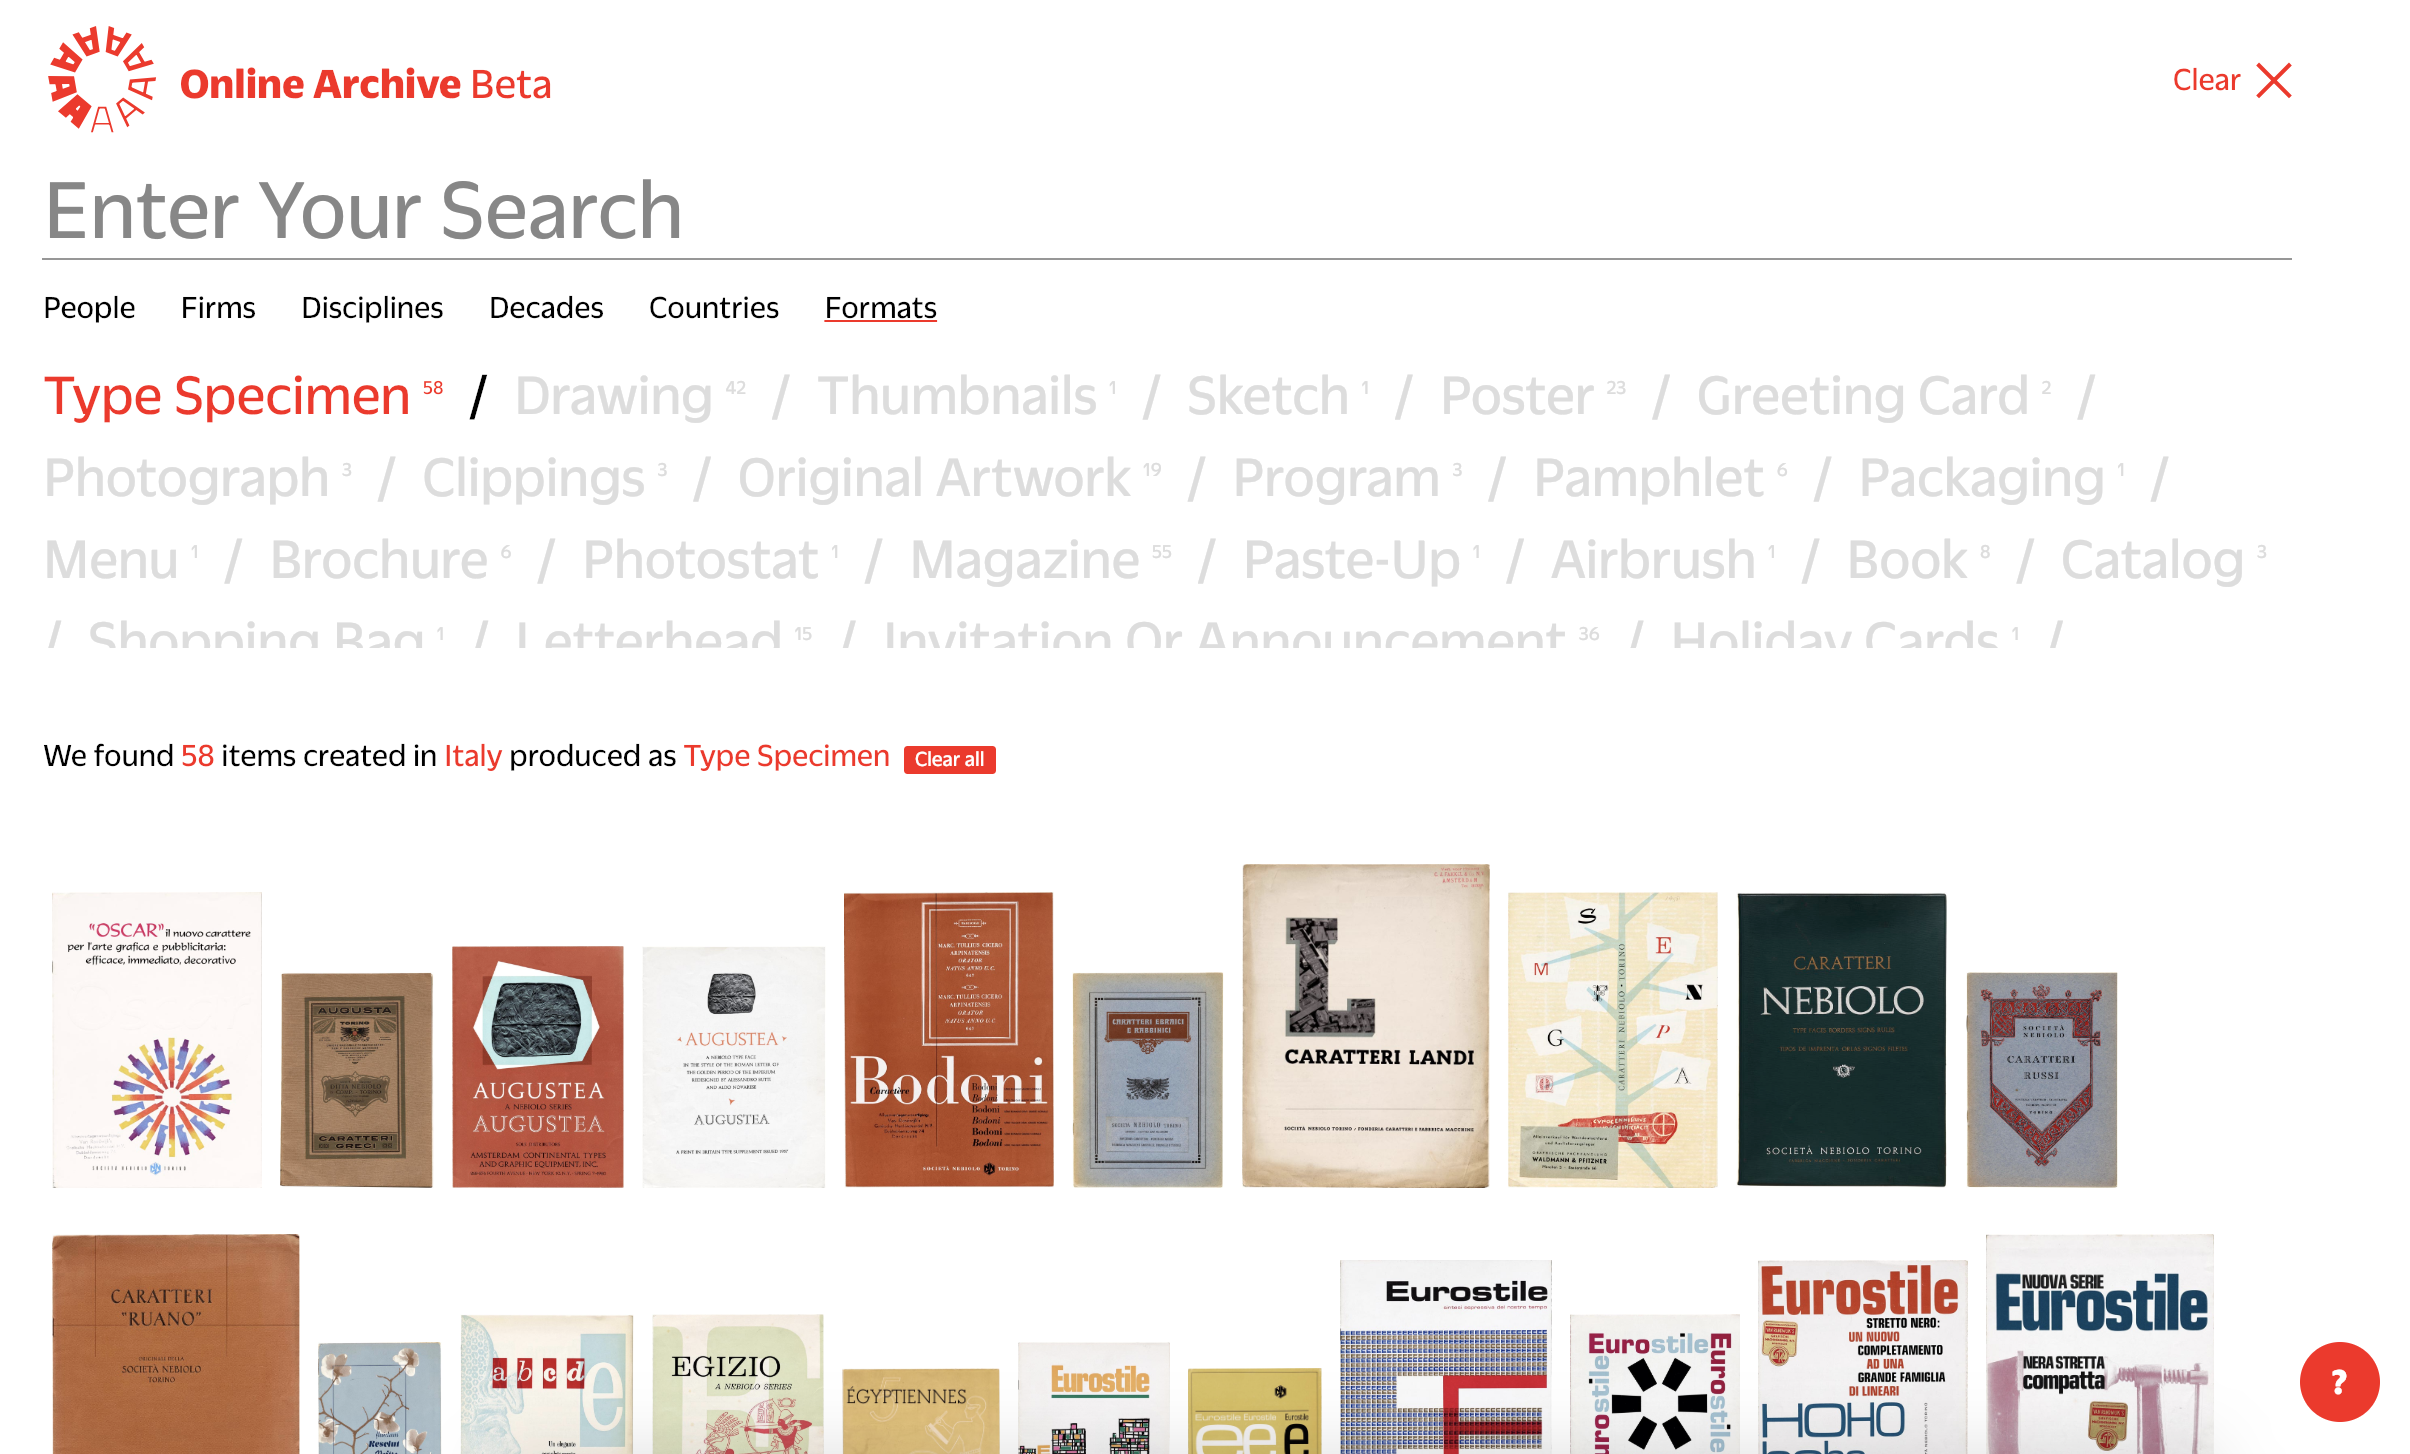 Letterform Archive's catalog search function